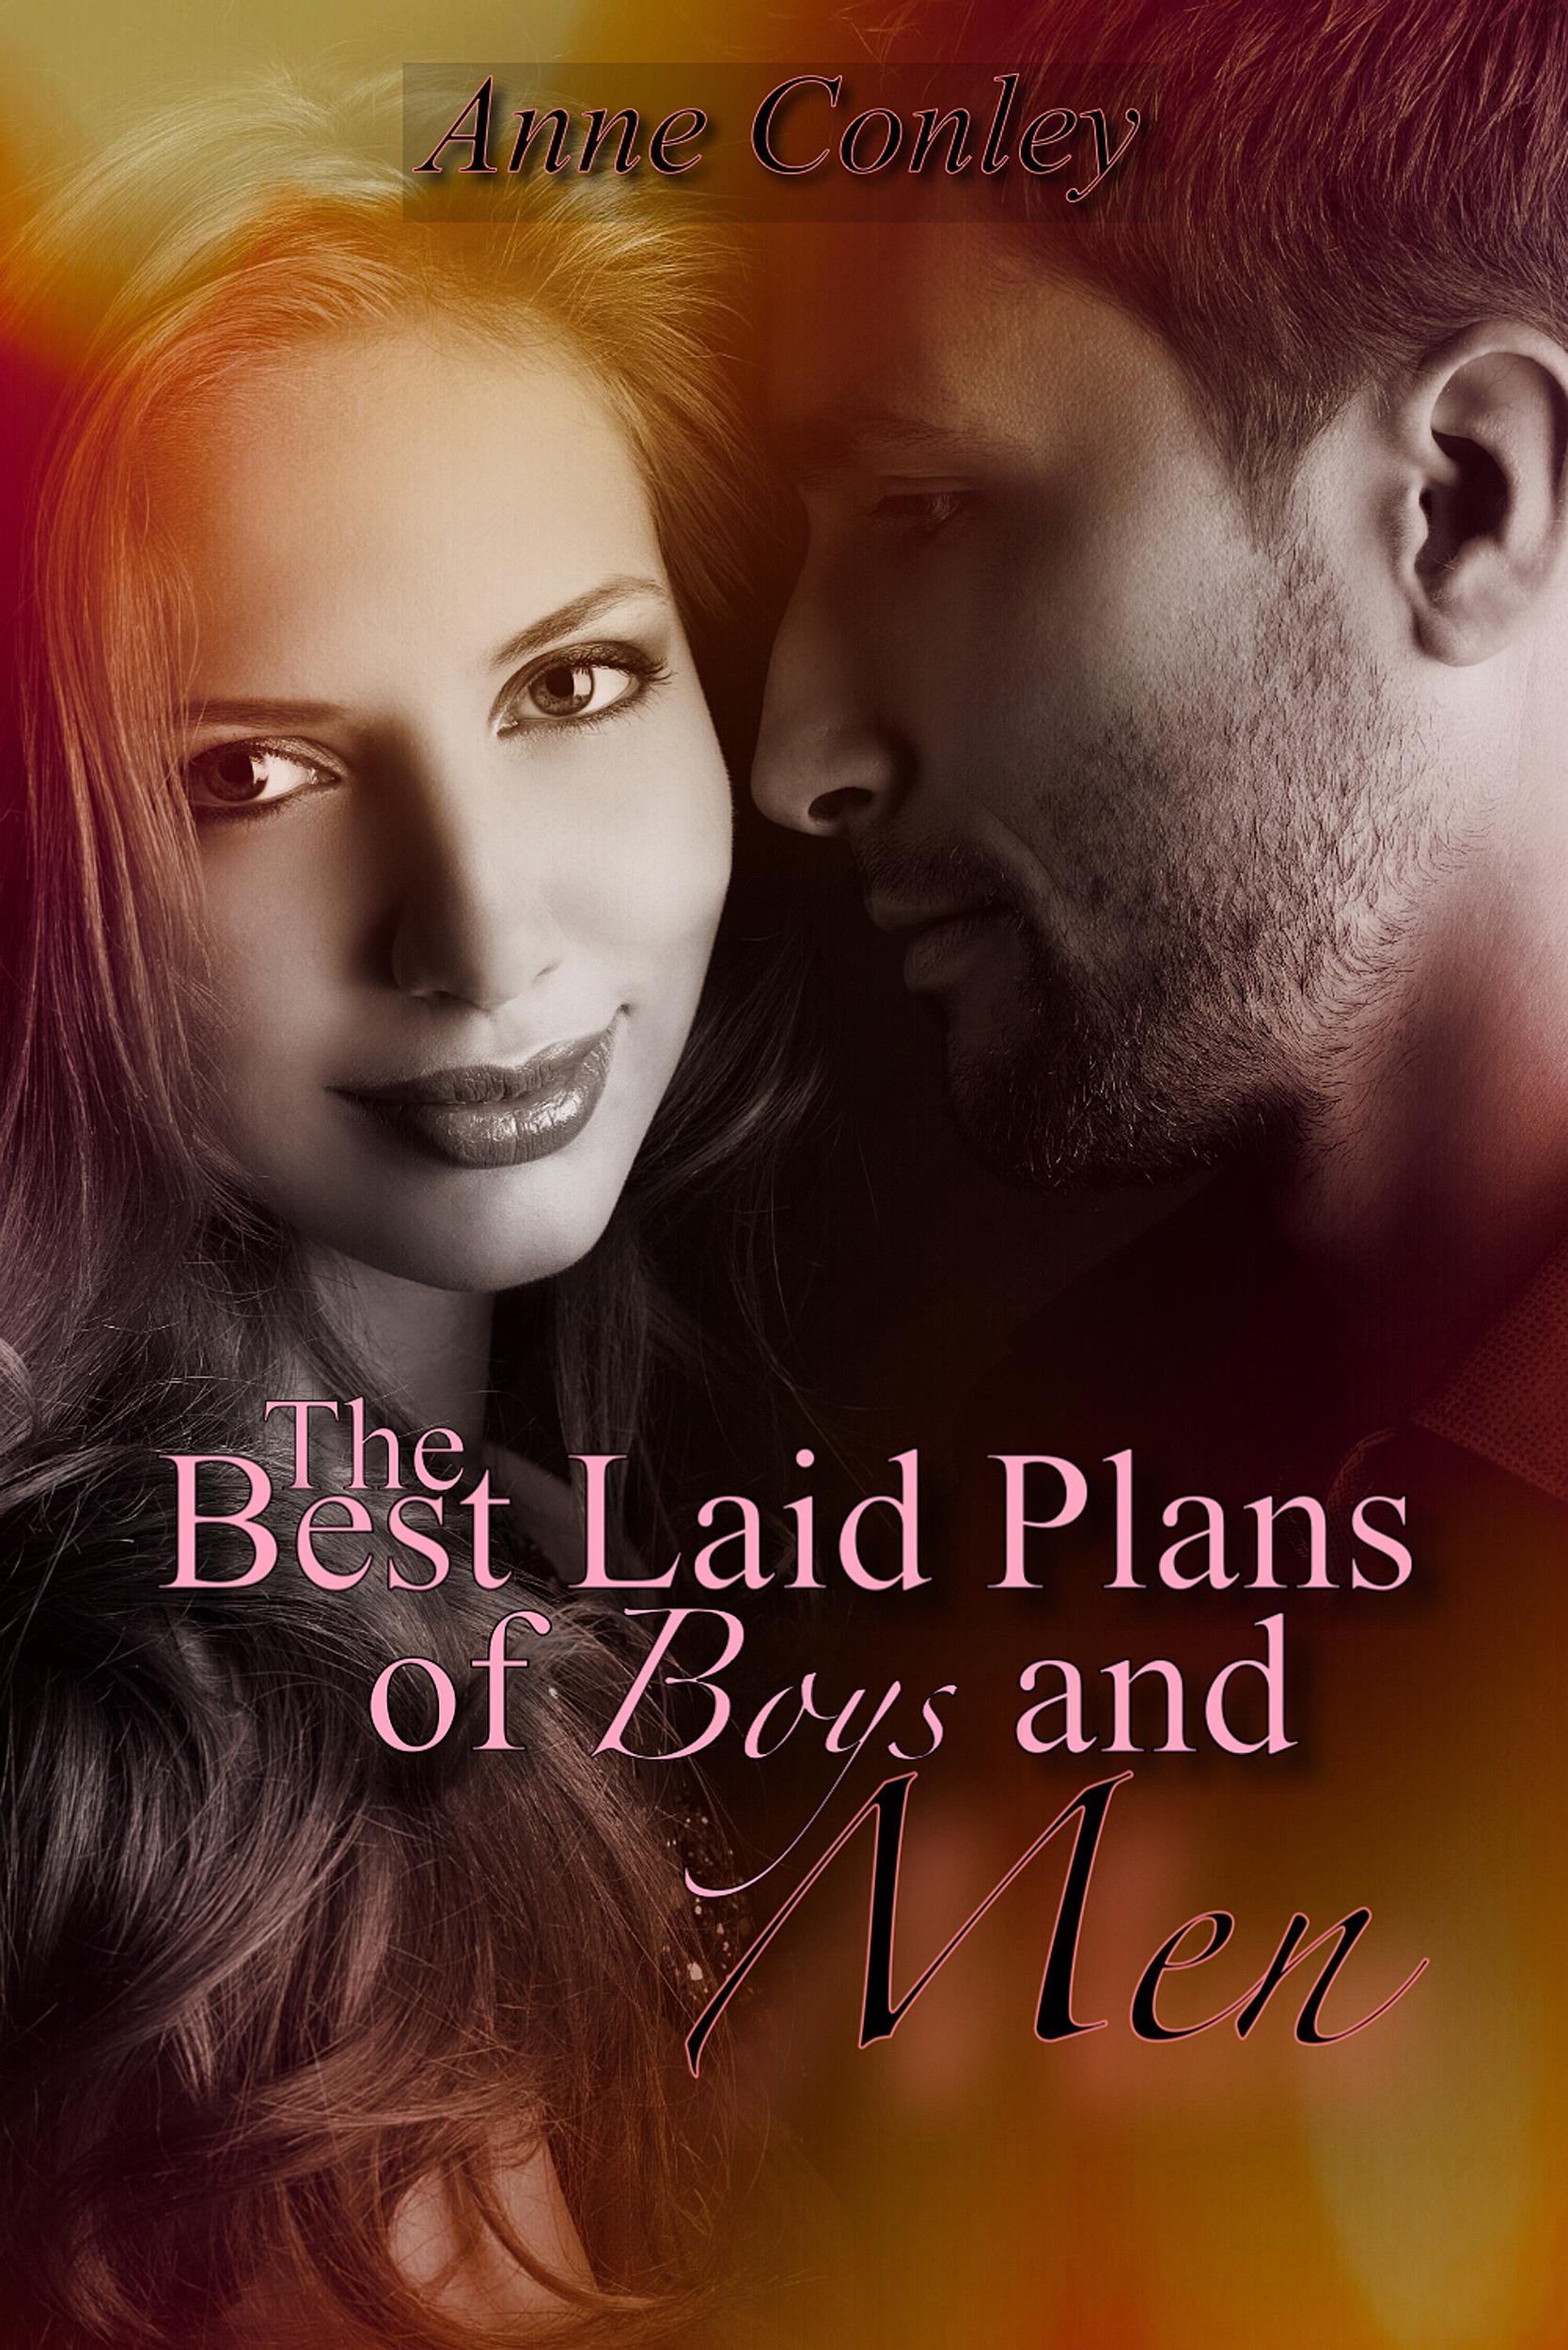 Contemporary Romance Book Covers : Best laid plans of boys and men by author anne conley